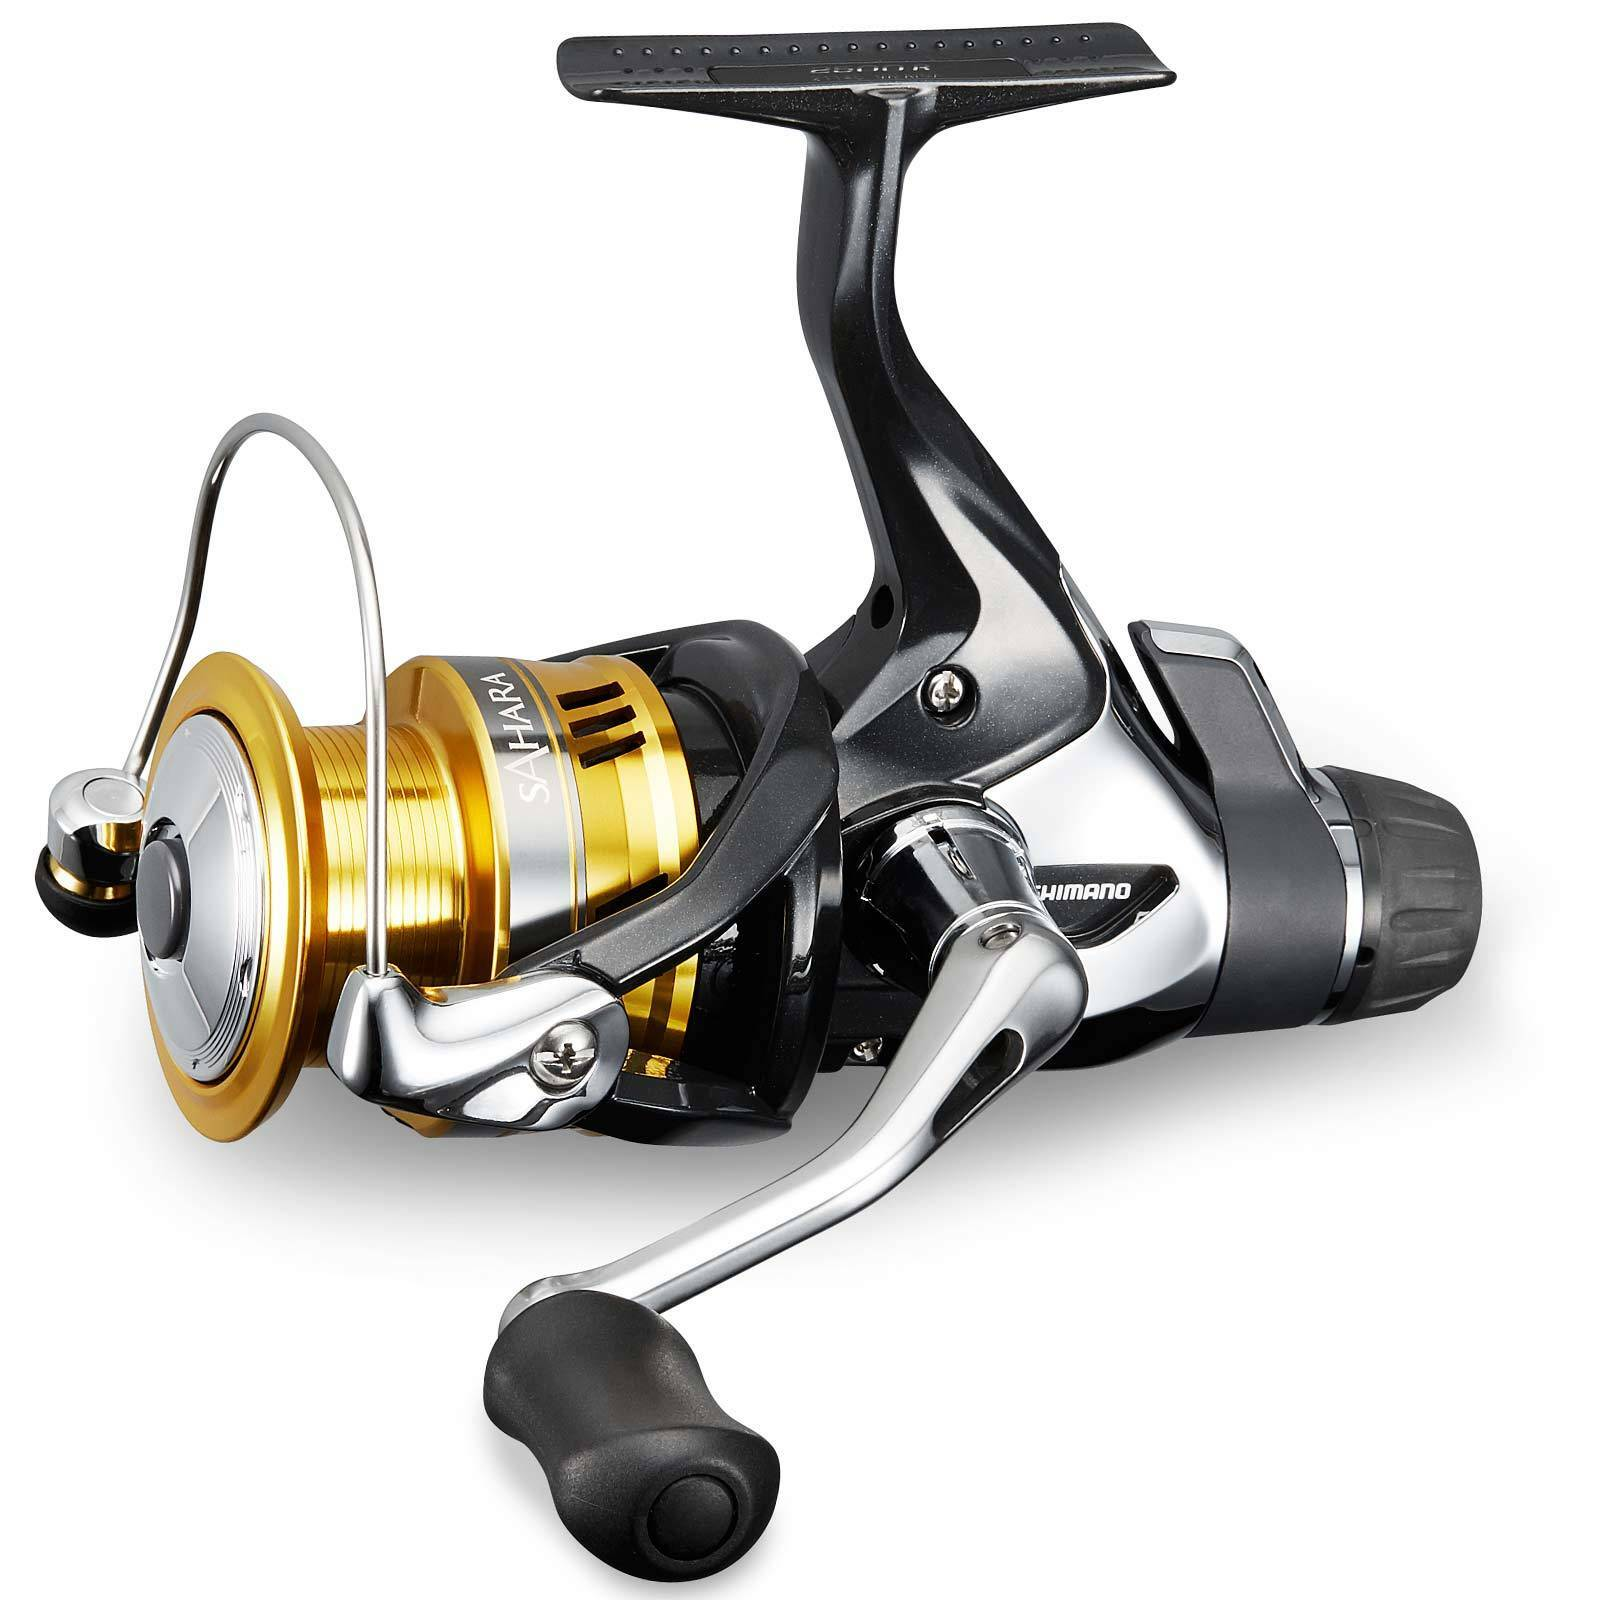 Shimano Angelrolle Kampfbremsrolle Spinnrolle Sahara Fightin' Fightin' Fightin' Drag 1000 RD 5aab39